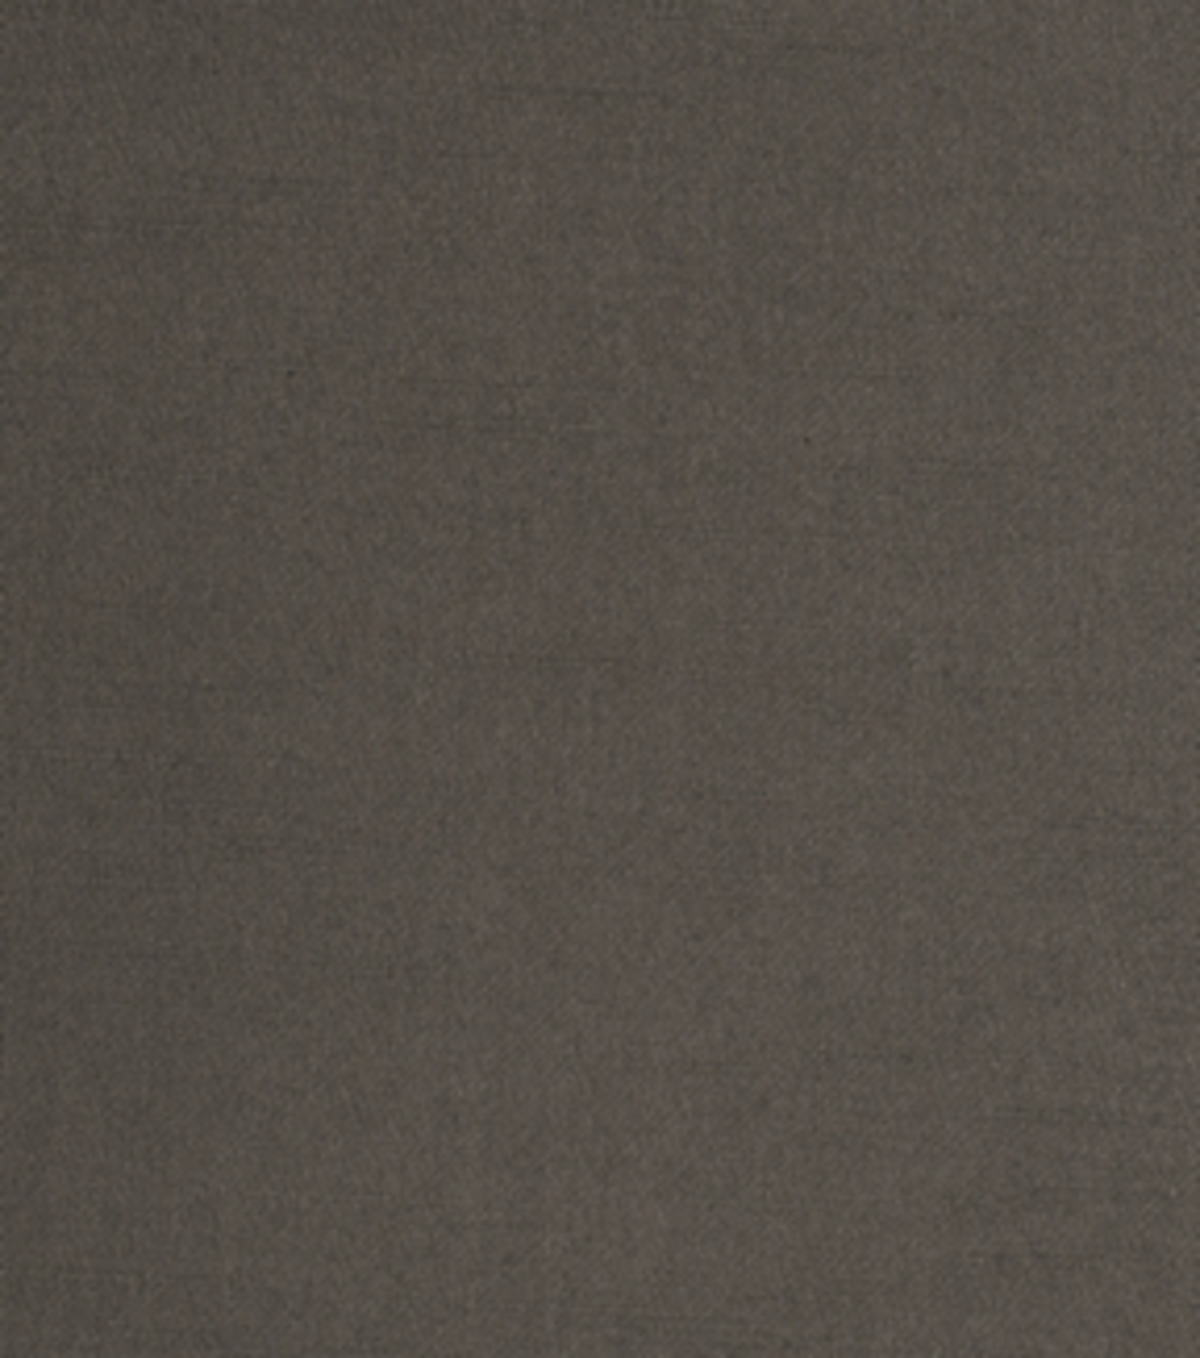 Home Decor 8\u0022x8\u0022 Fabric Swatch-Richloom Studio Silky Graphite